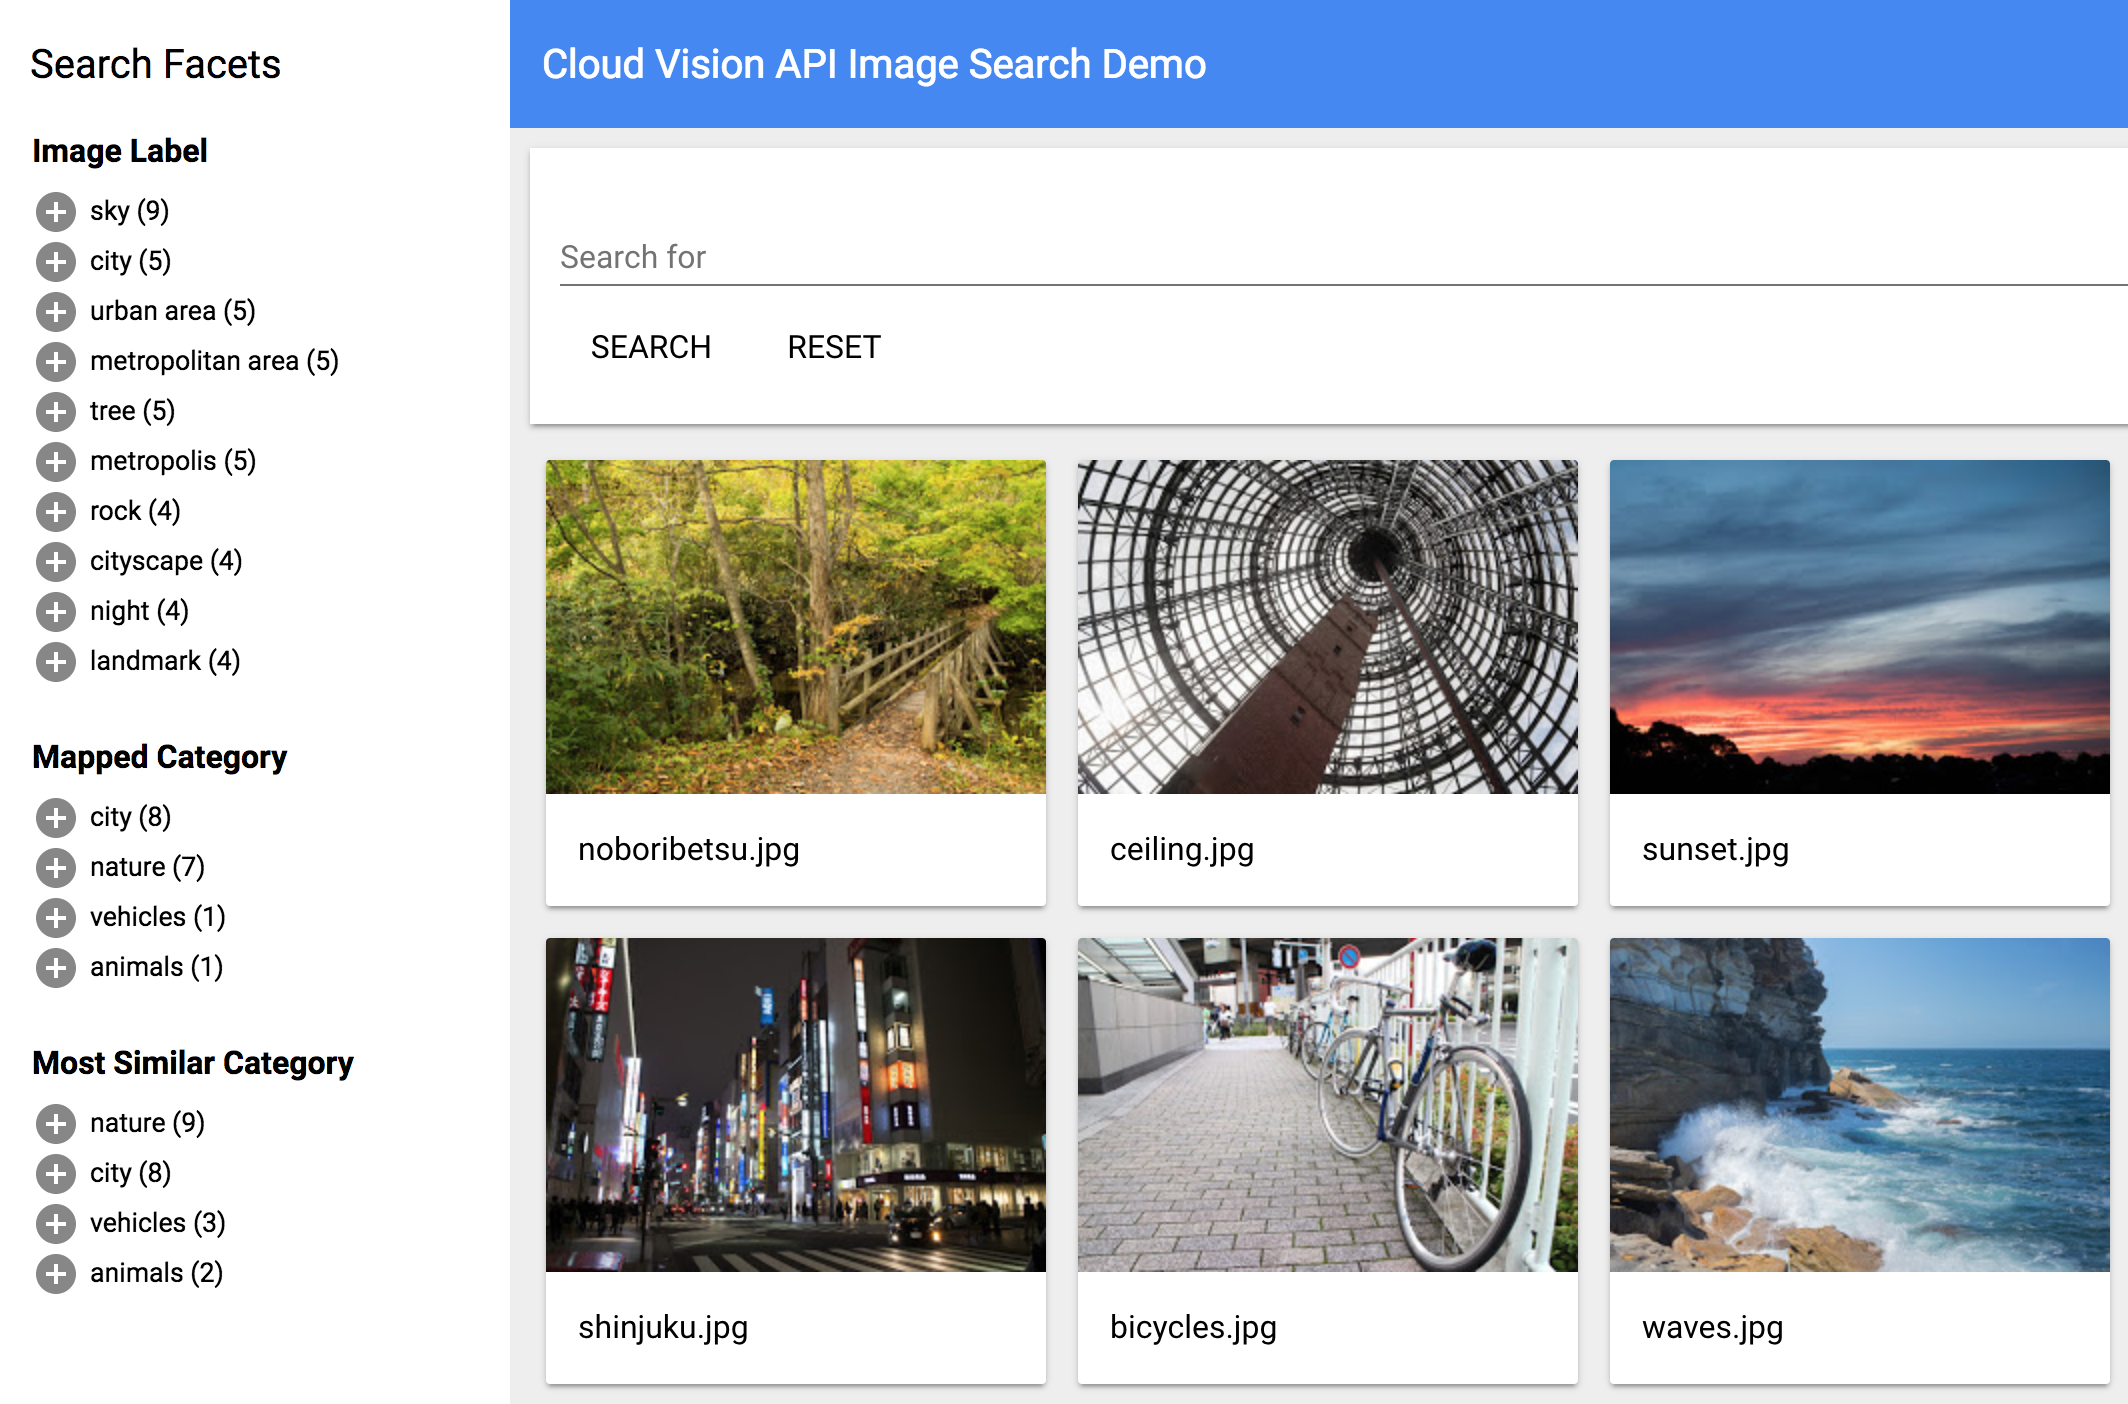 An Image Search Application That Uses The Cloud Cloud Vision And